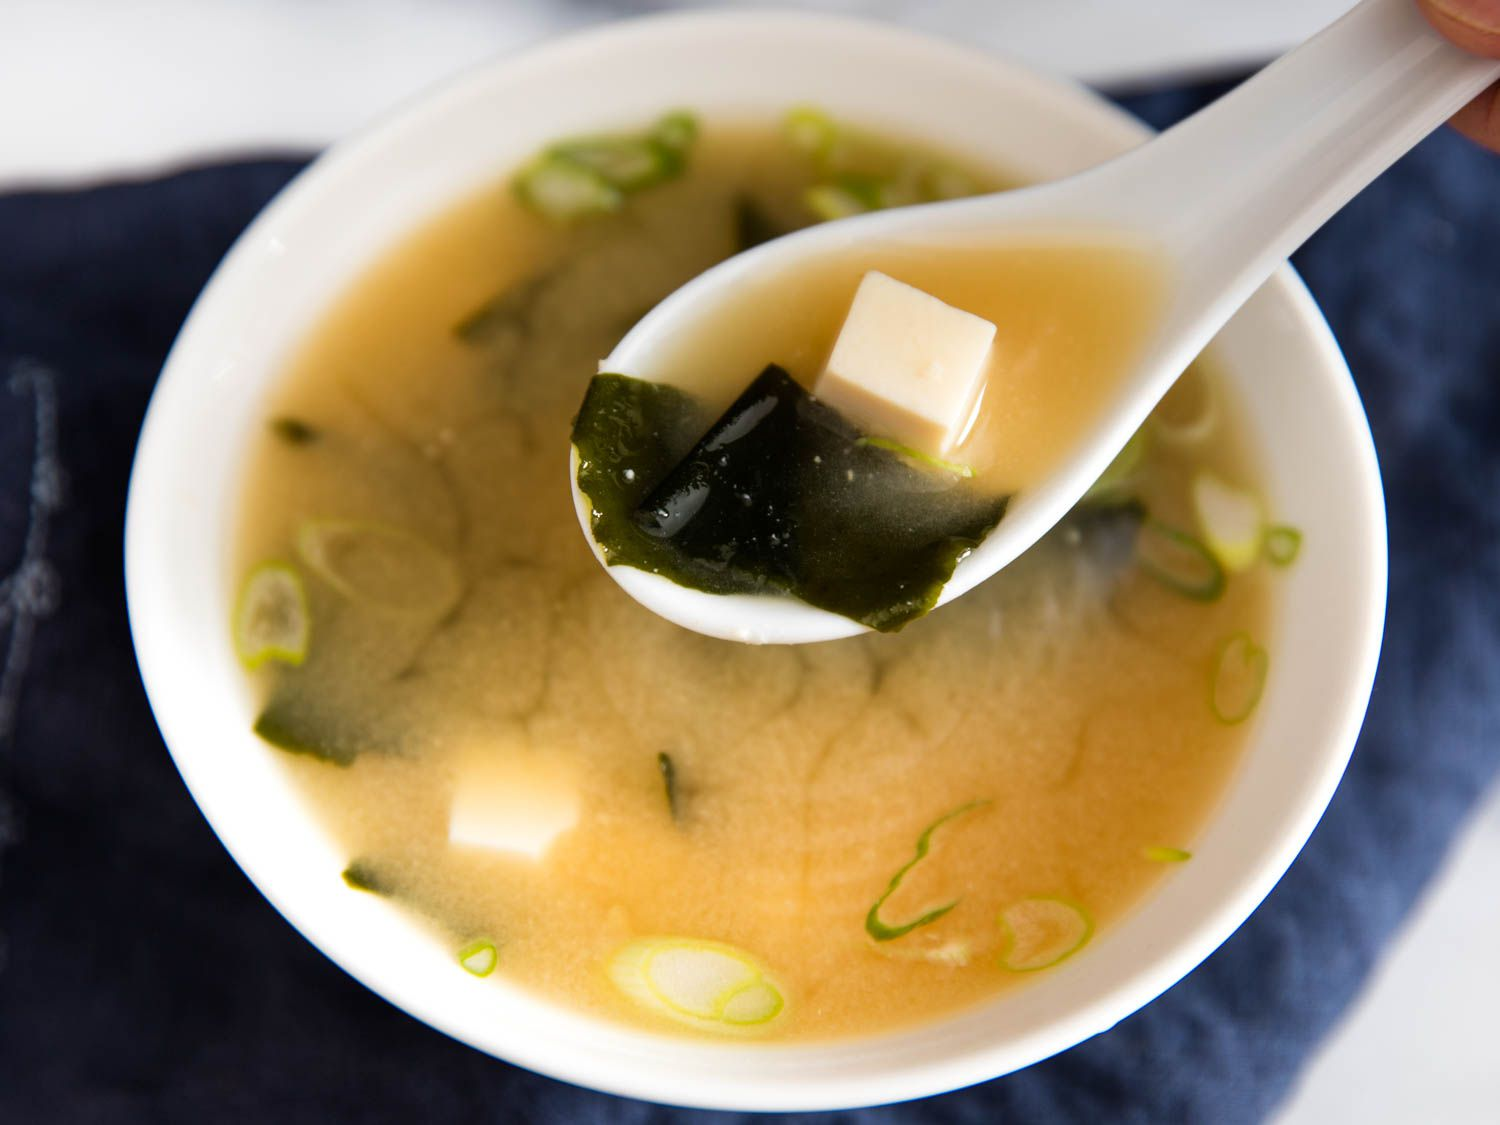 20160302-miso-soups-feature-vicky-wasik-4-2.jpg